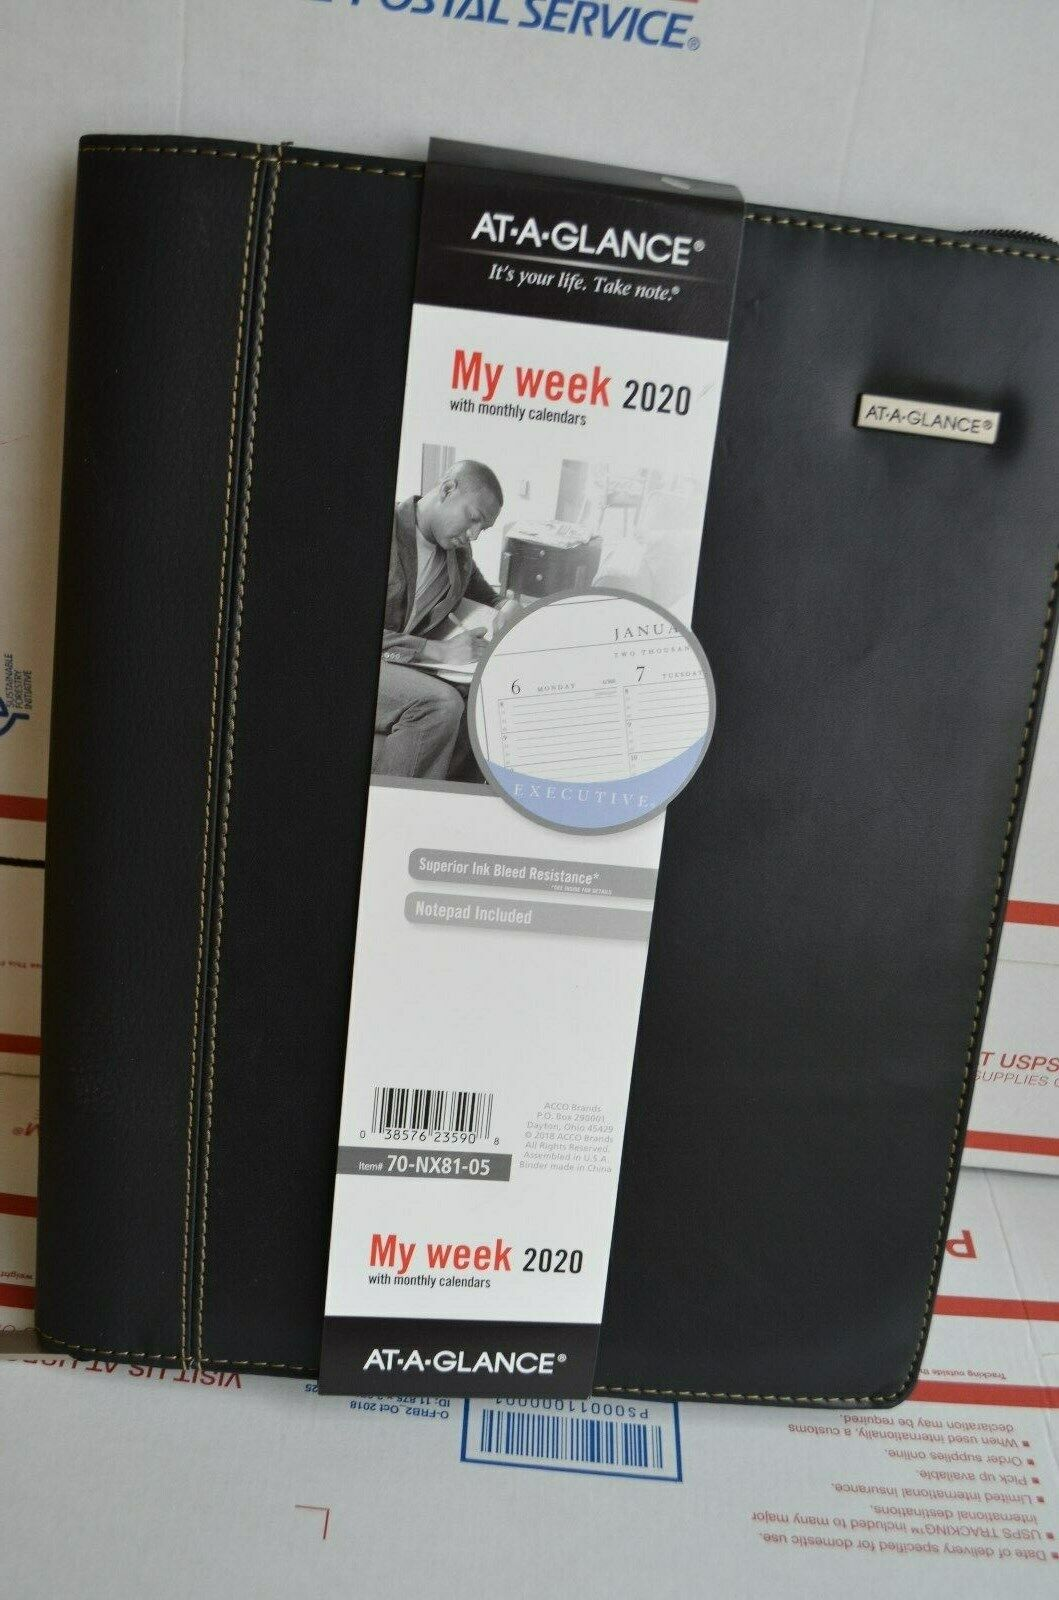 AT-A-GLANCE Zipper Padfolio Planner Executive Weekly/Monthly